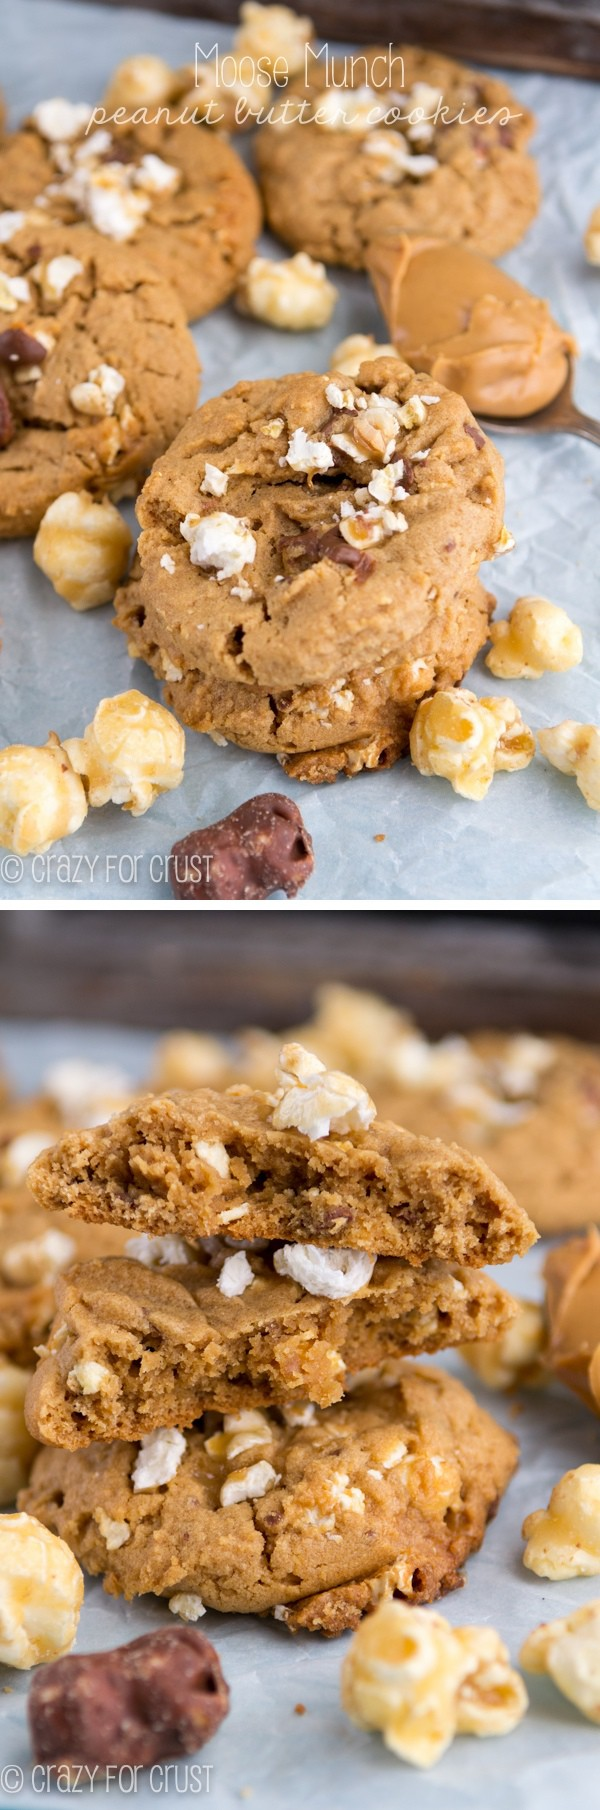 2 photo collage of Moose Munch Peanut Butter Cookies with recipe title on top